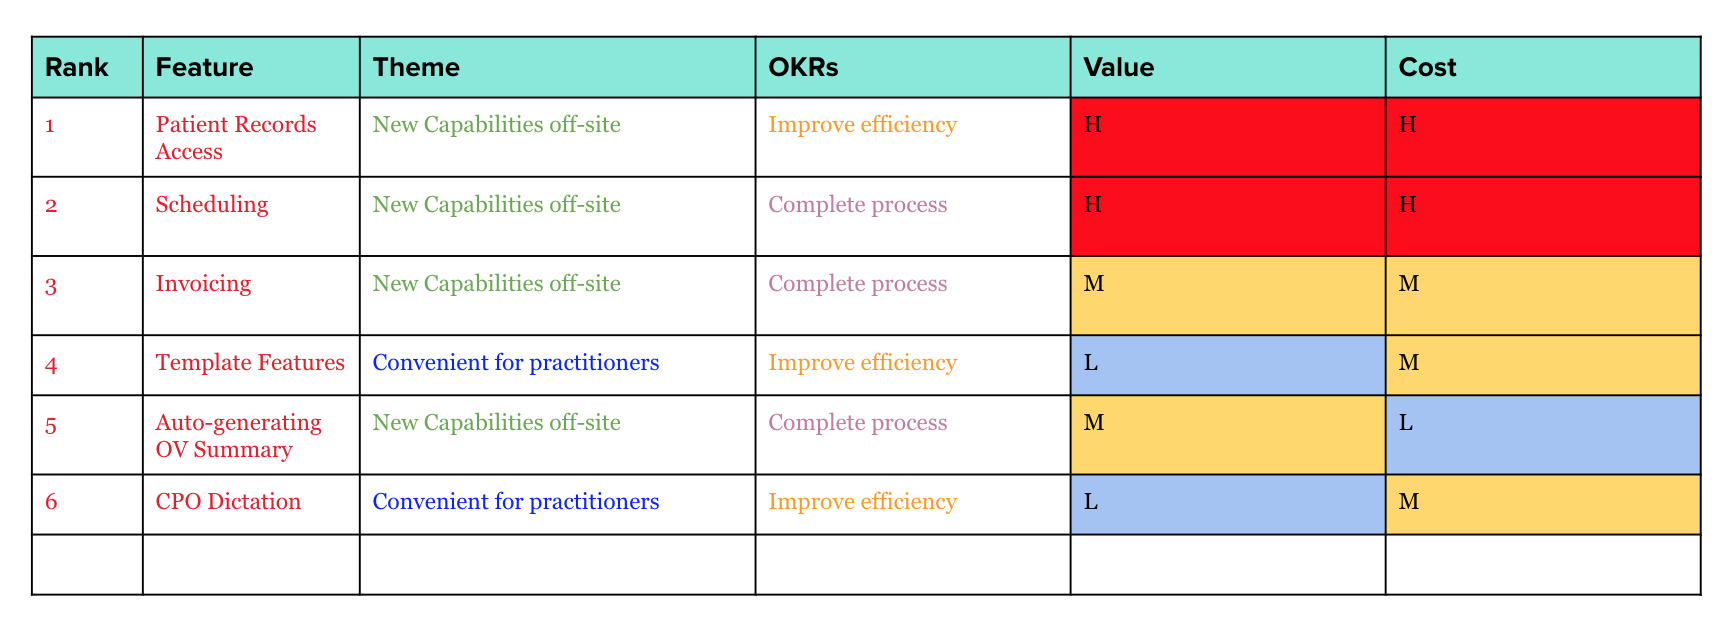 FEATURES SORTED BY HIGH, MEDIUM, AND LOW PRIORITY.